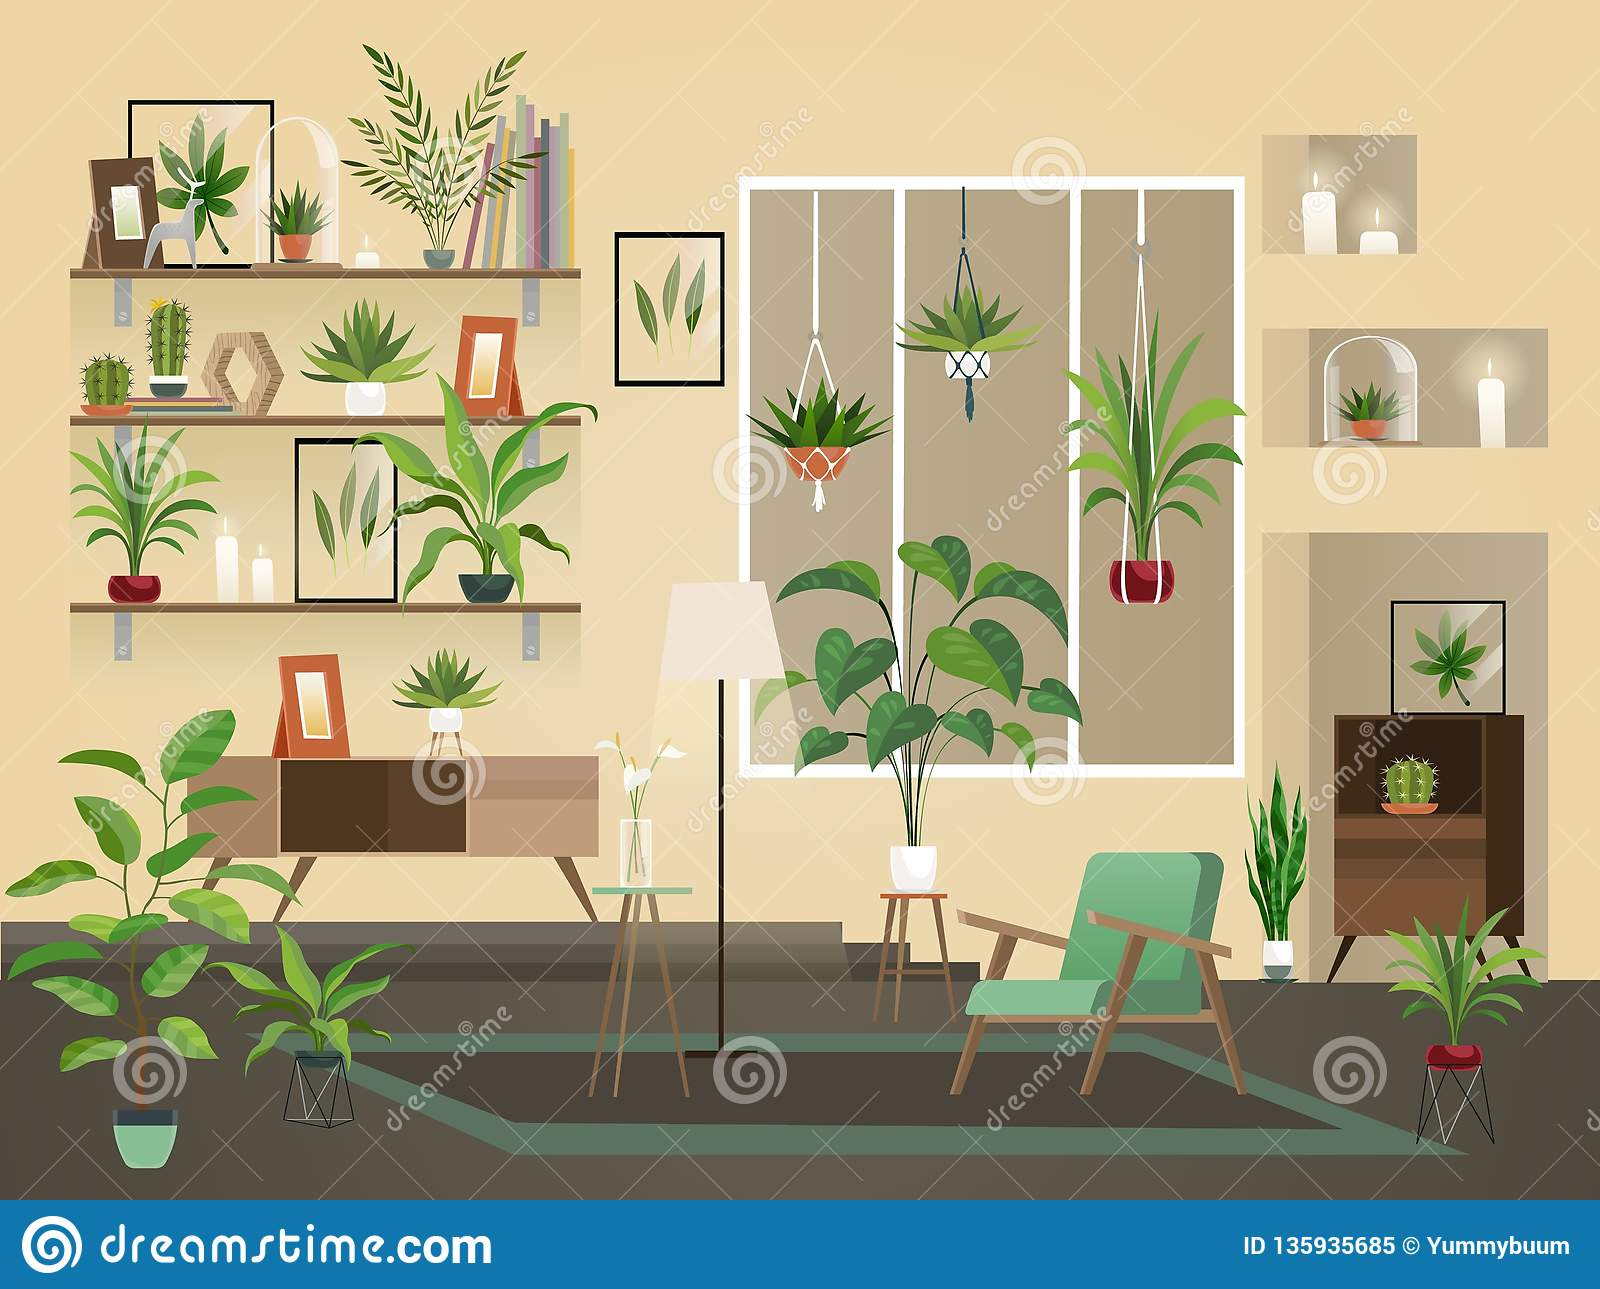 Indoor flowers into room. Urban home interior, vector living room with plants, chairs and vase